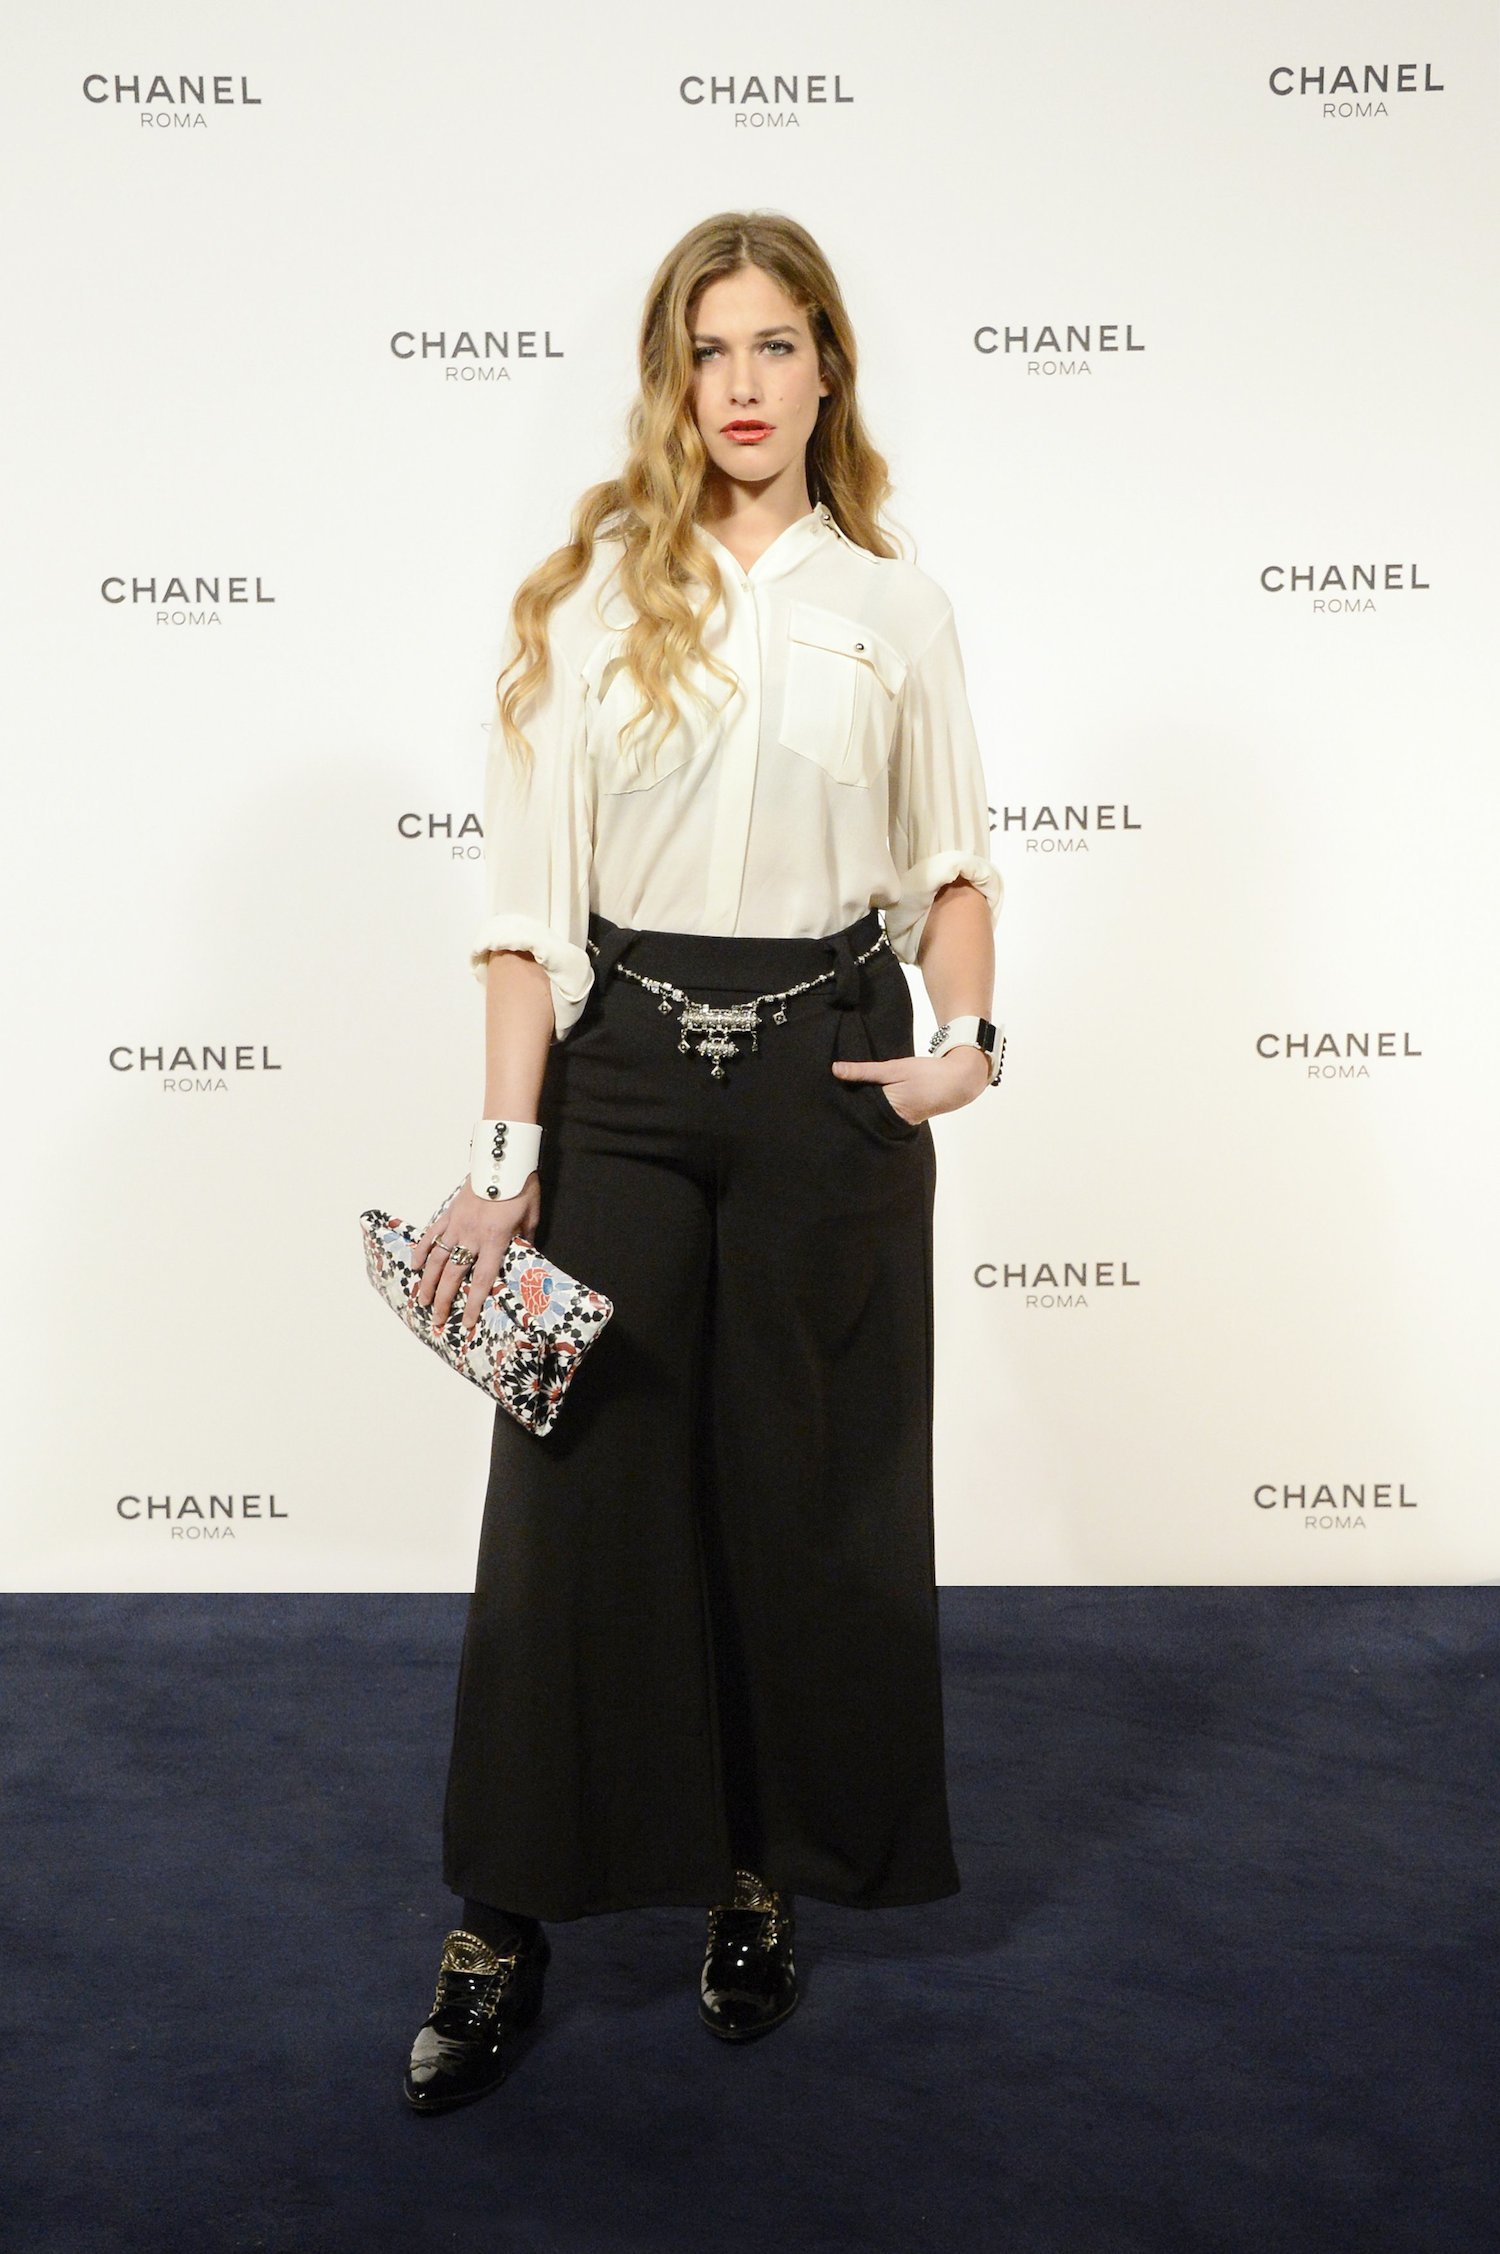 Chanel Rome Party Opening - Tea Falco